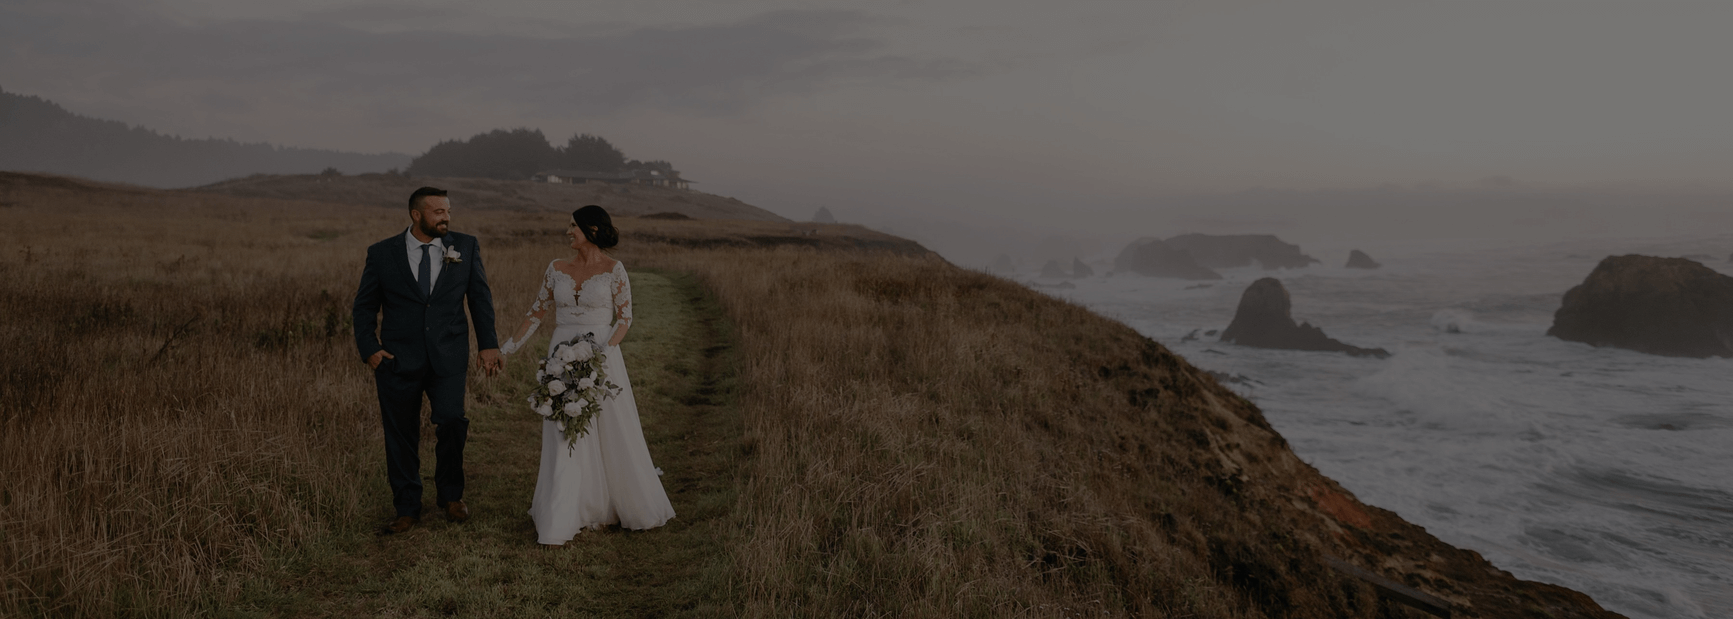 Photo of just married couple walking along coastal path